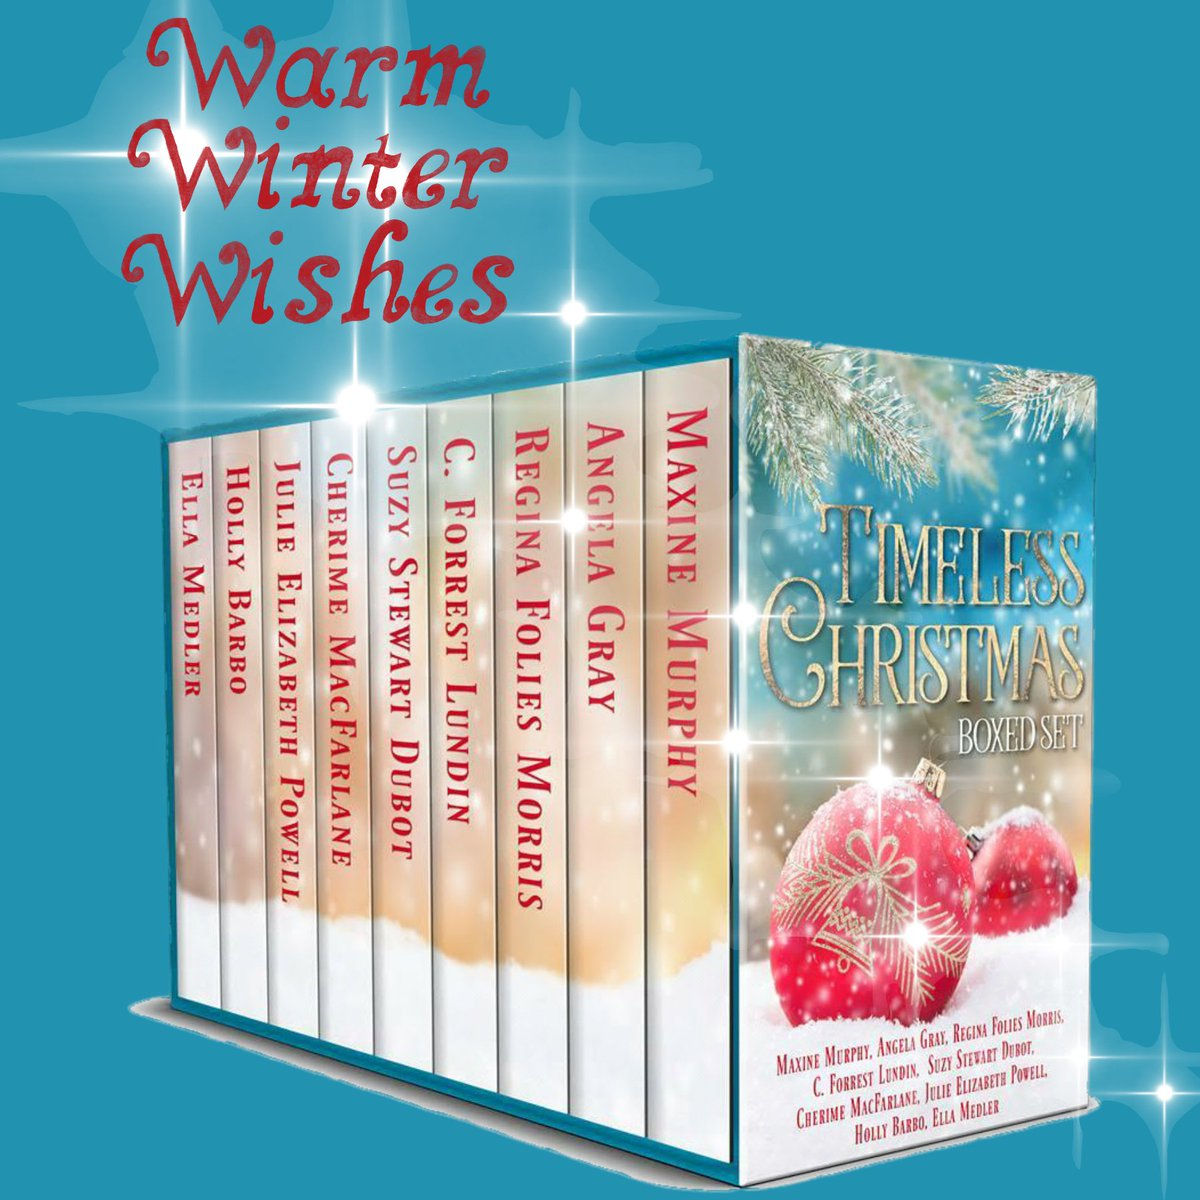 Keep that Christmas feeling… http://mybook.to/TimelessChristmas … … #Christmas #past #present #future #spiritofChristmas #boxset  #pgp @CherimeMacFarla